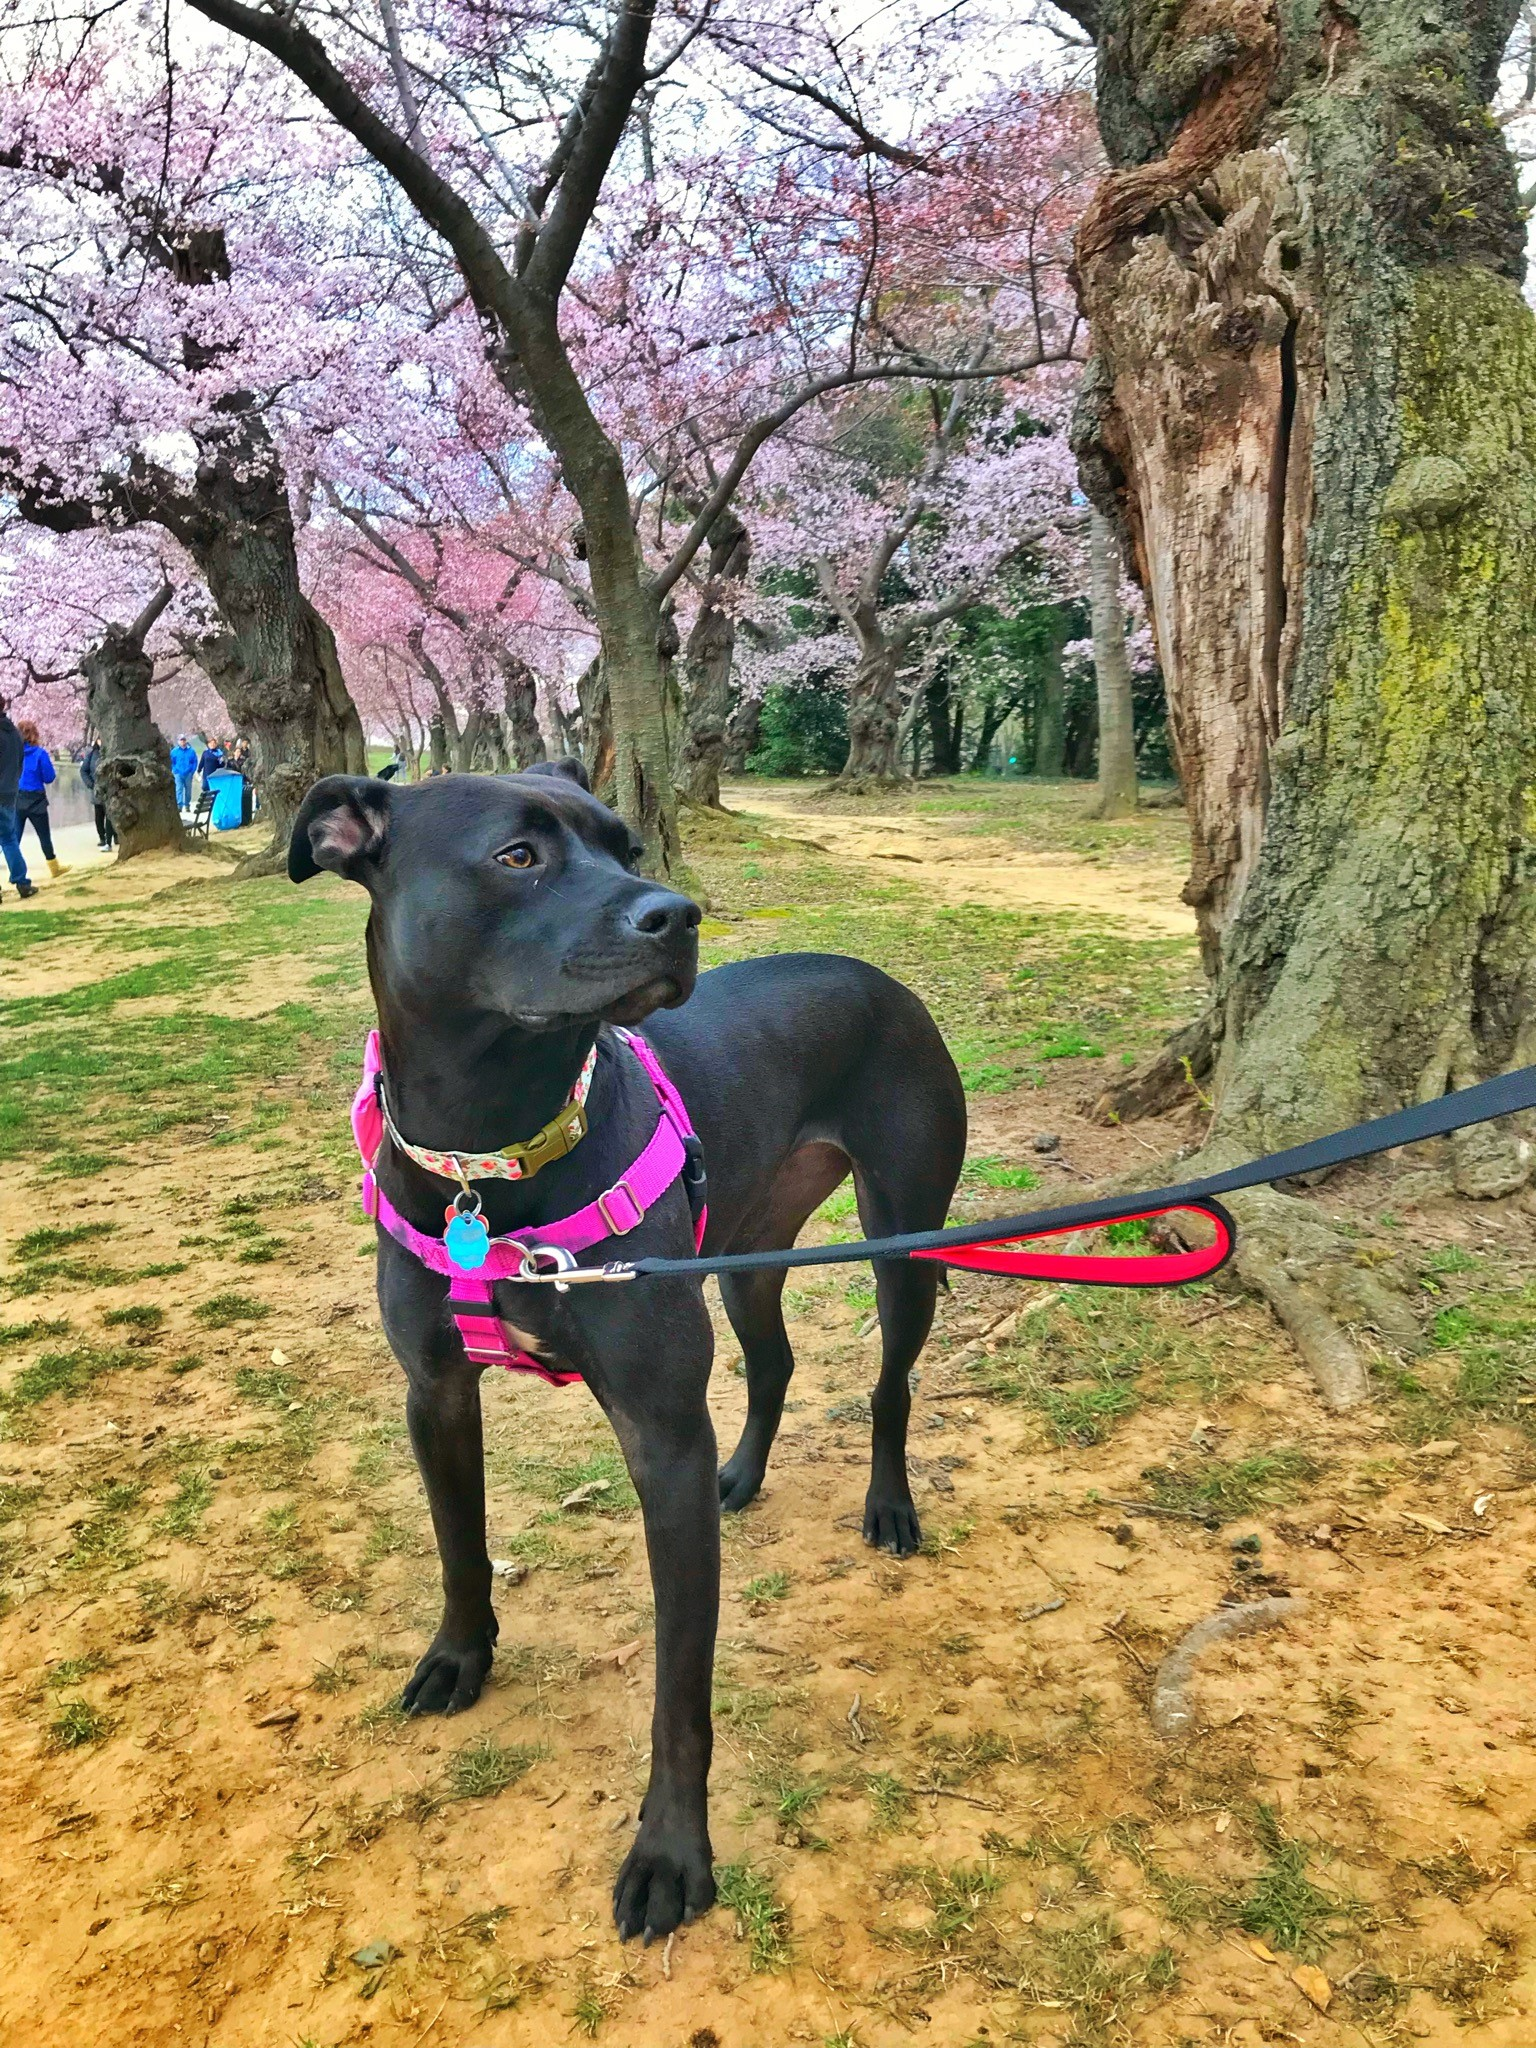 In honor of National Pet Day (which is basically like Christmas around here!) we checked in on a few of our favorite Instagram stars to see what they've been up to lately, and we noticed many of them had paid a visit to D.C.'s beloved blossoms. So for this week's special RUFFined Spotlight, we give you some adorable four-legged admirers of the cherry blossoms! (Image: via IG user @acadianationalbark /{ }instagram.com/acadianationalbark/){ }